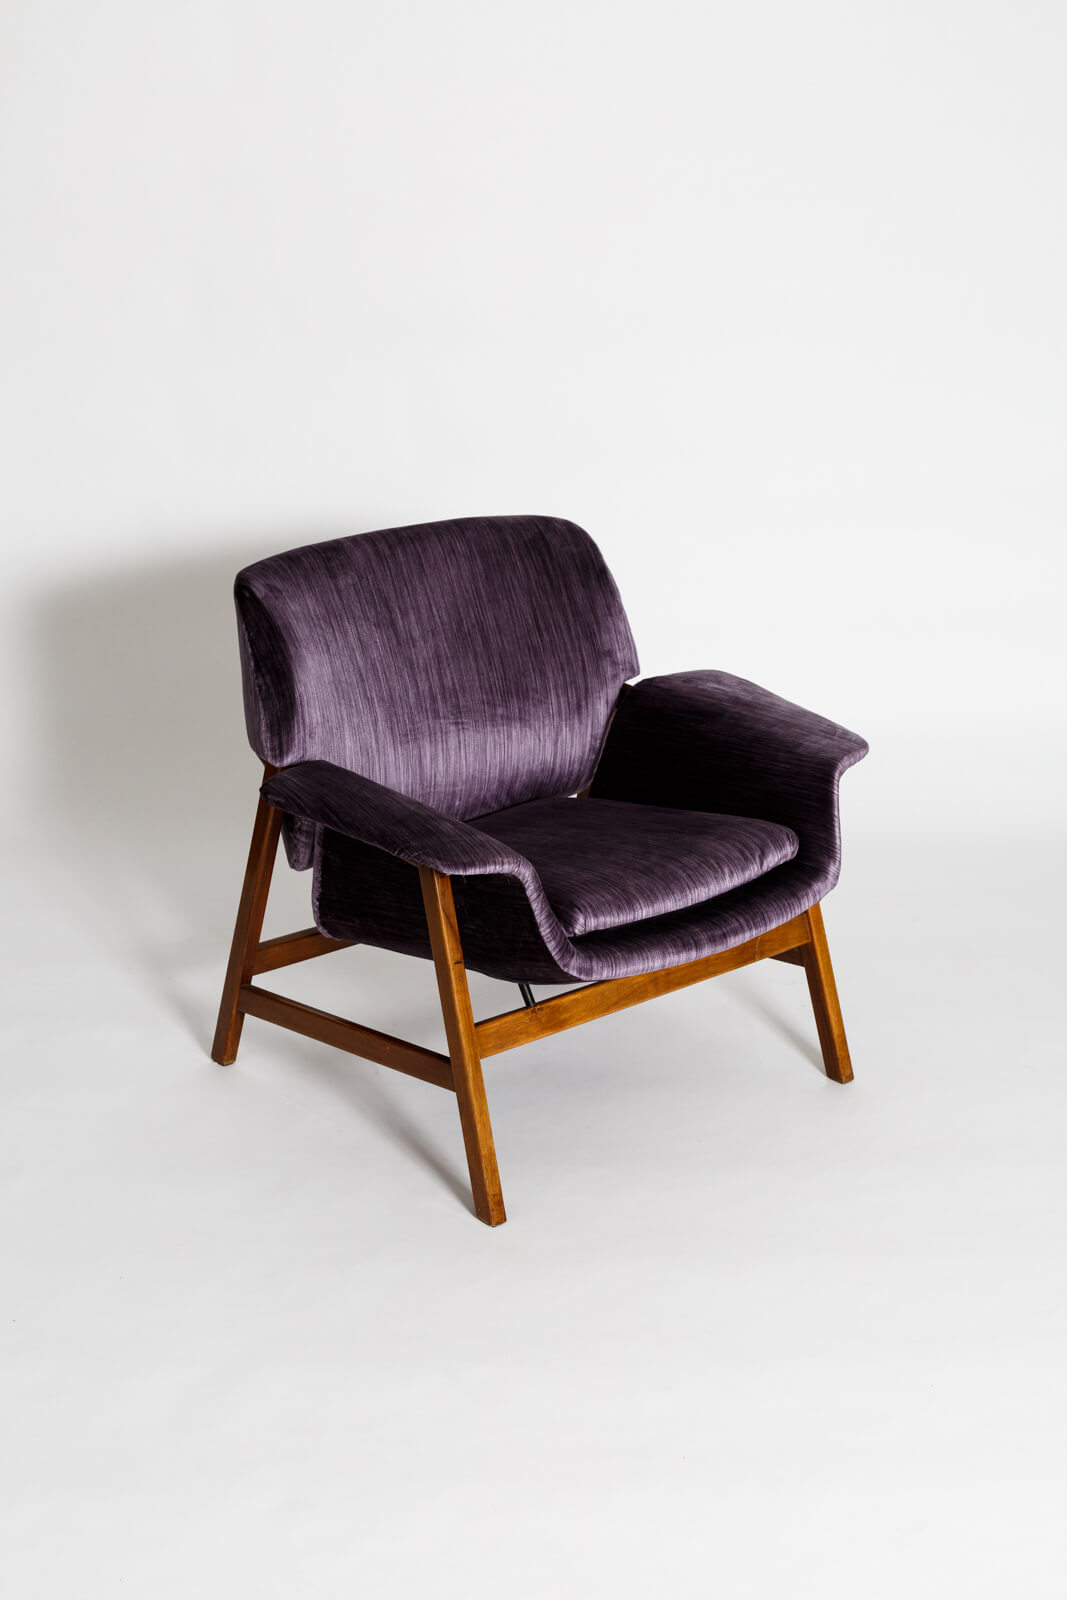 Armchair model 849 by Gianfranco Frattini for sale